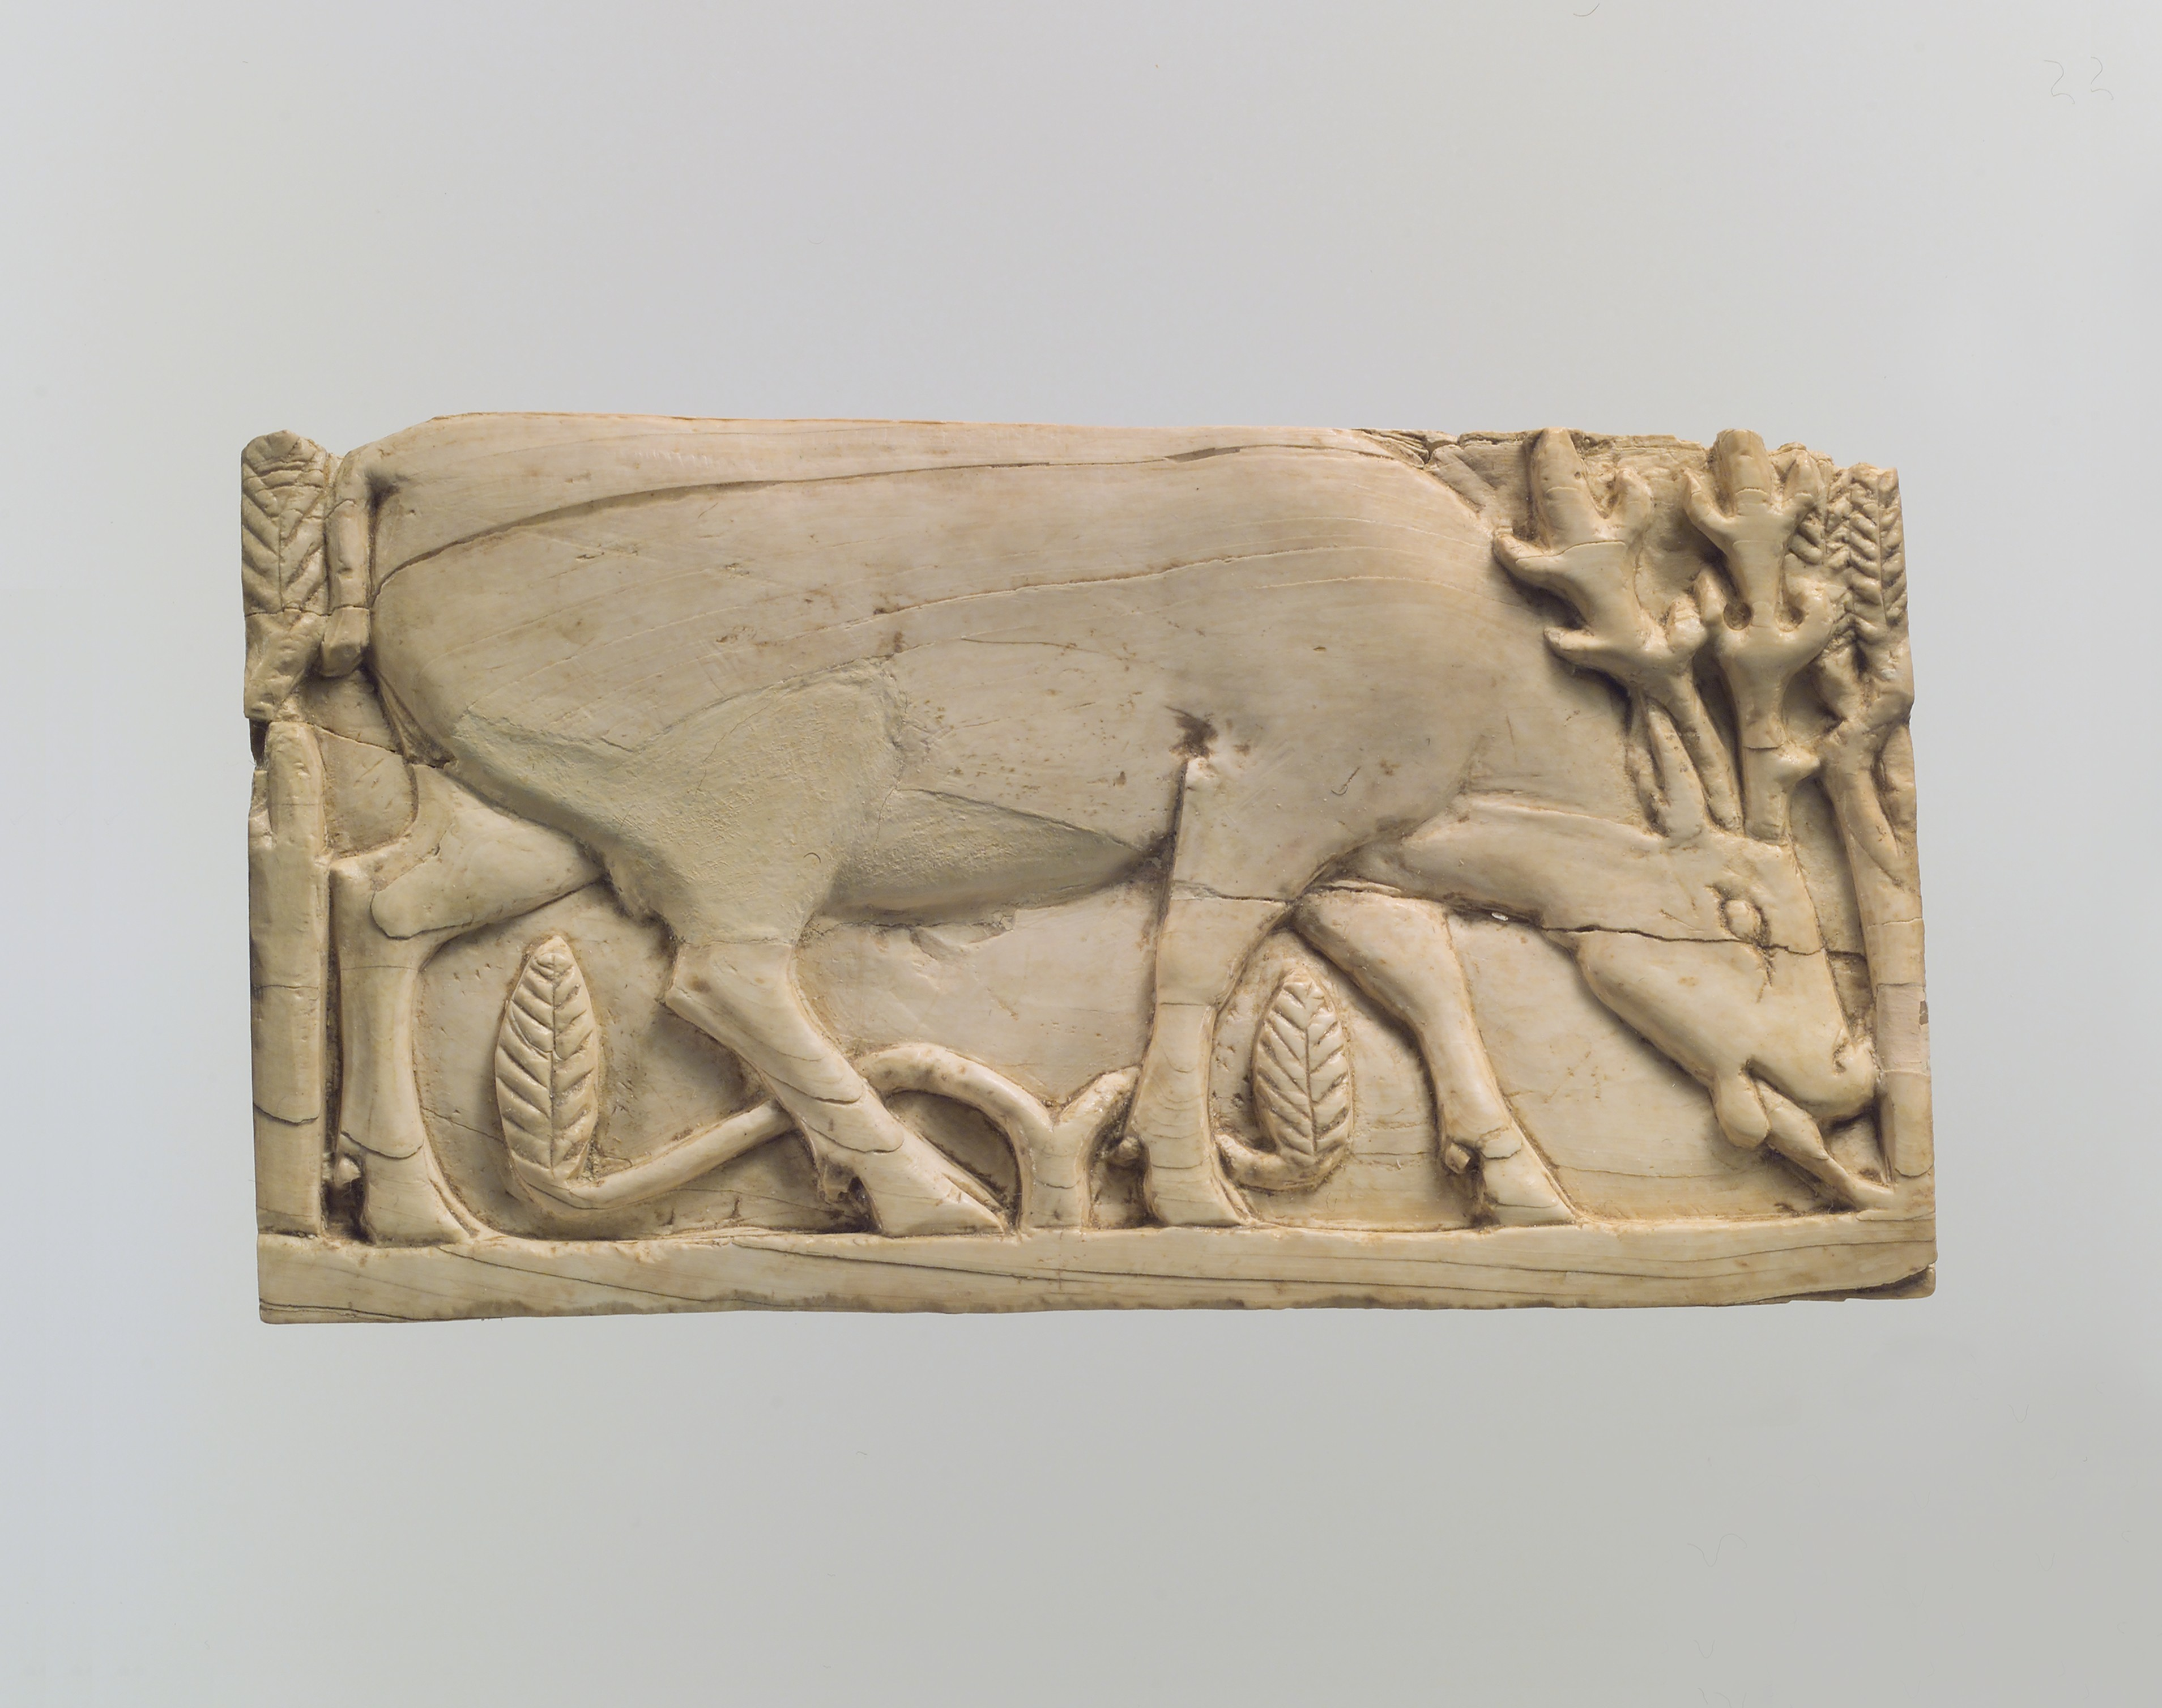 File furniture plaque carved in relief with a stag grazing among